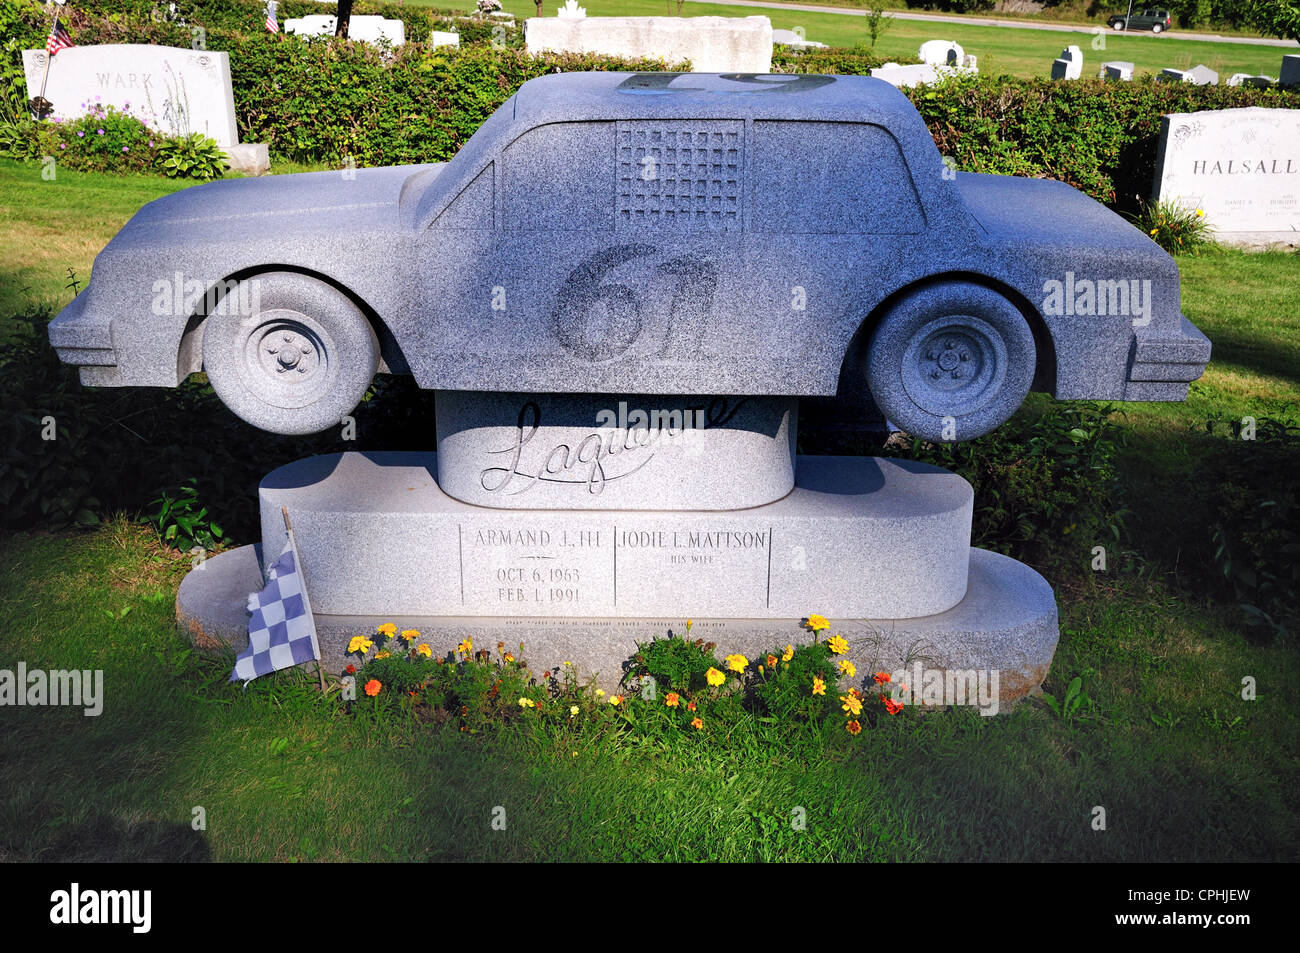 Giant sized gravestone in the shape of a racing car. The memorial is in Hope cemetery, Barre, Vermont - Stock Image